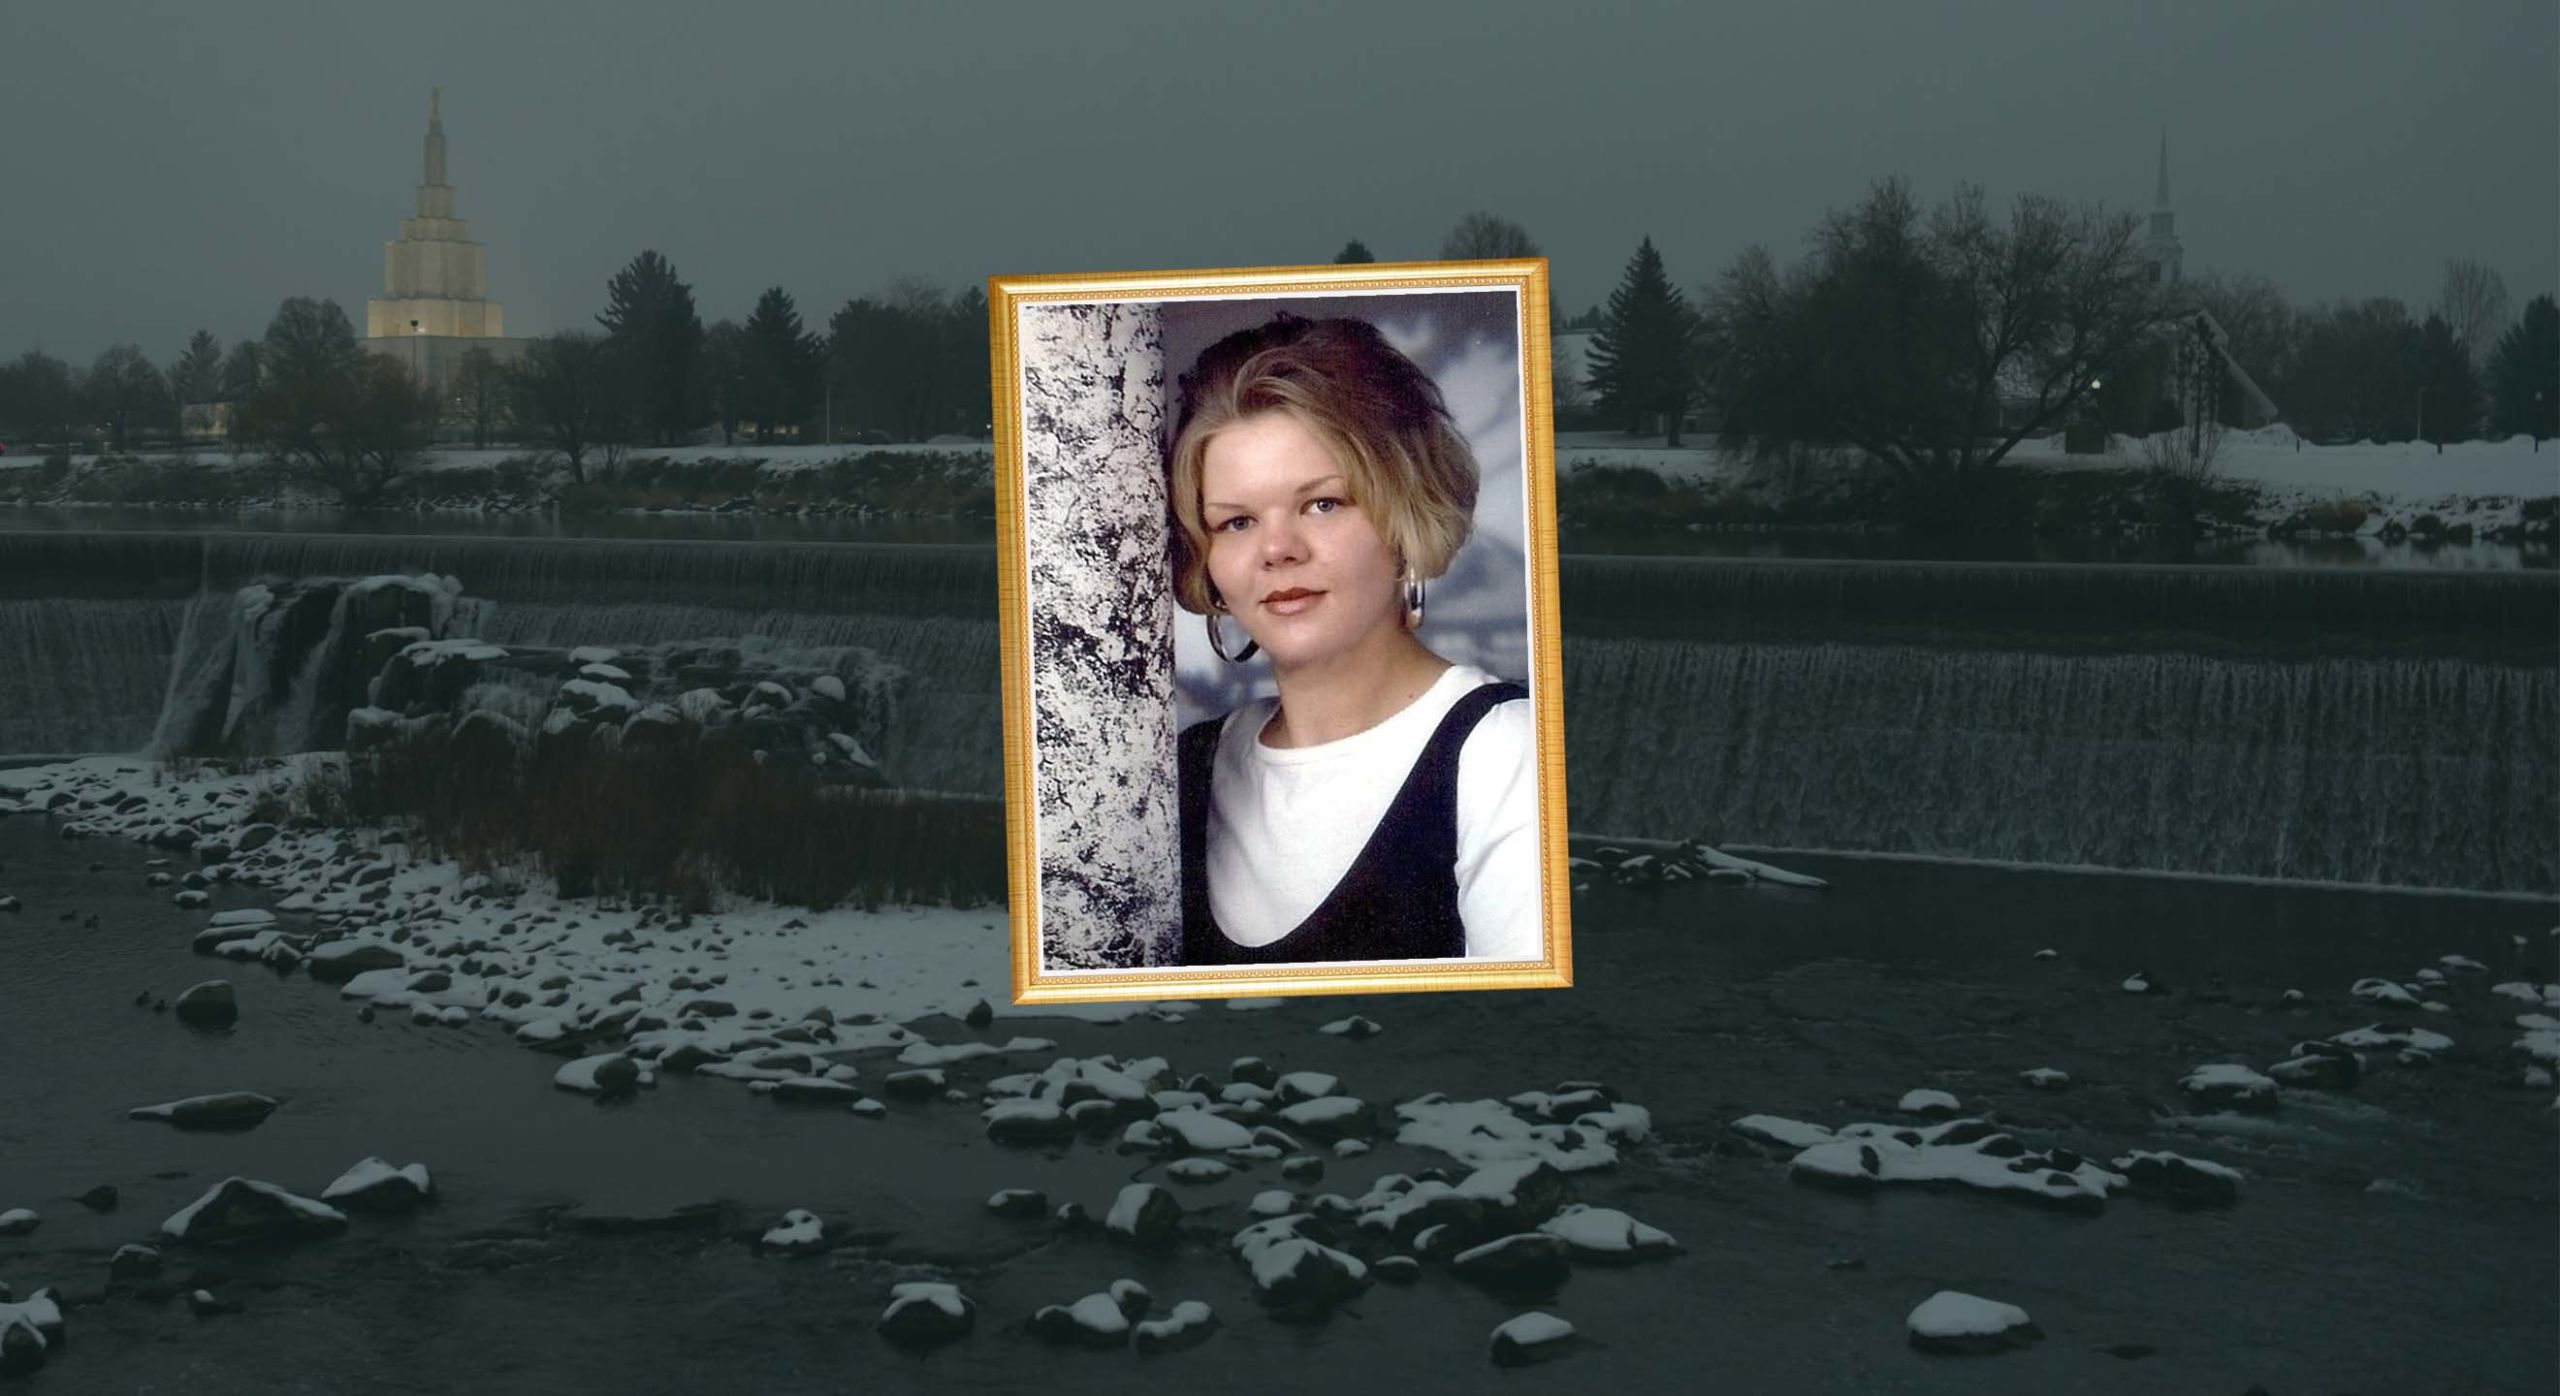 Framed photograph of blonde girl with short hair against grey backdrop